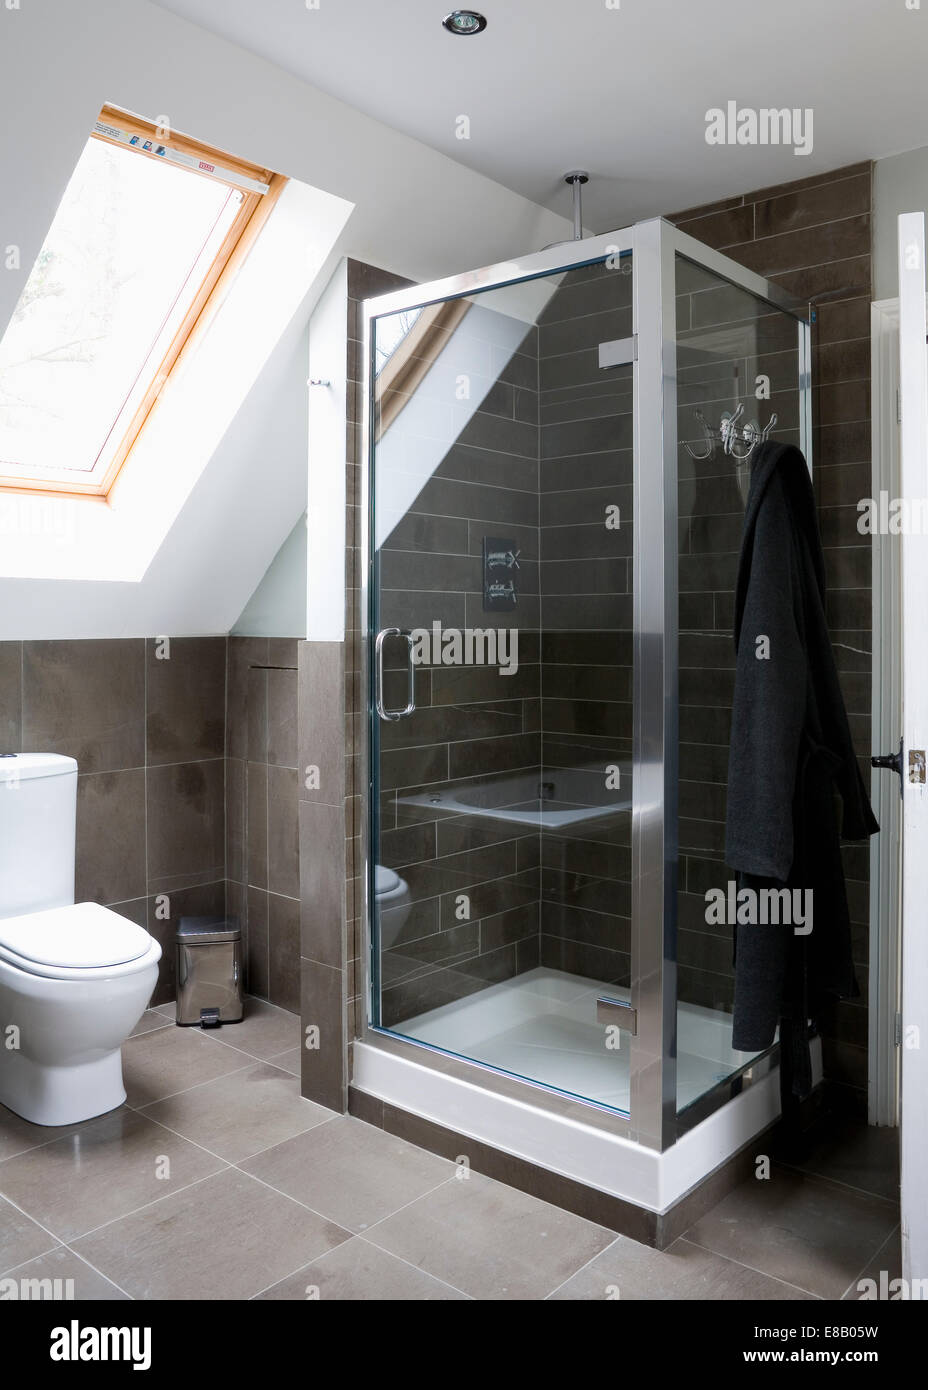 modern loft conversion shower room stock photo, royalty free image